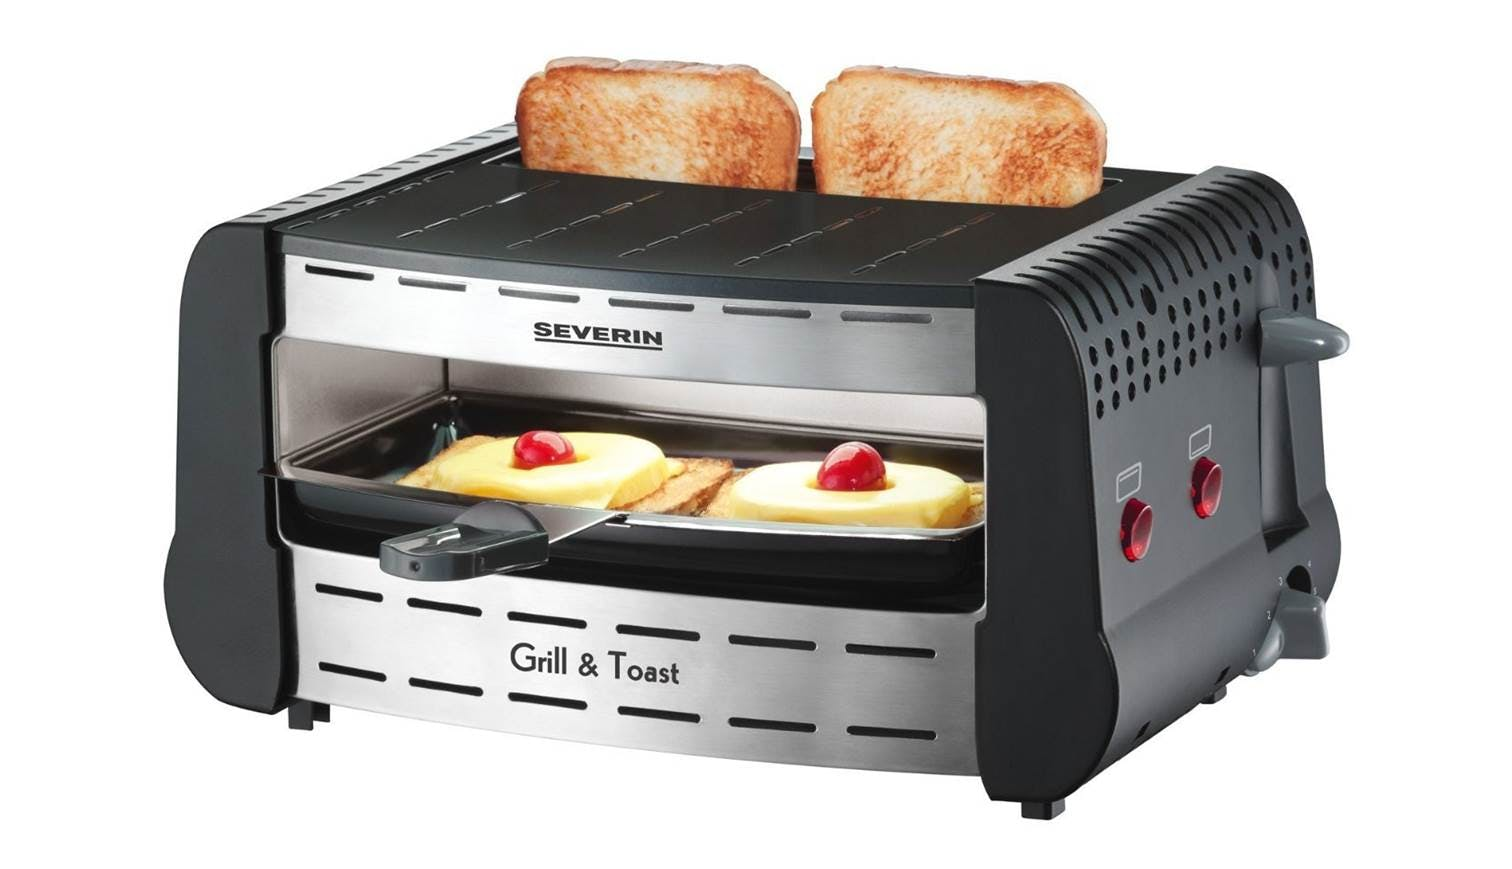 Kitchen Appliances Singapore Severin Gt2802 Automatic Toaster With Grill Pan Harvey Norman